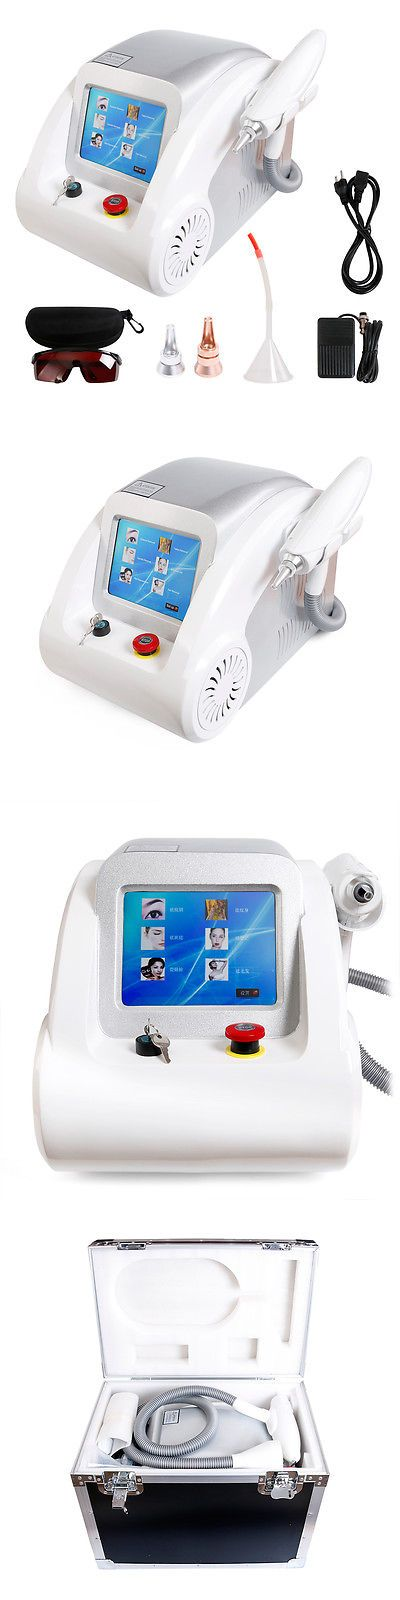 Tattoo Removal - Tattoo Removal Machines: Nd Yag Q-Switch Laser Tattoo Removal Machine 1064Nm And 532Nm Beauty Device Lr301 -> BUY IT NOW ONLY: $2095 on eBay! - Quick and Easy Natural Methods & Secrets to Eliminating the Unwanted Tattoo That You've Been Regretting for a Long Time